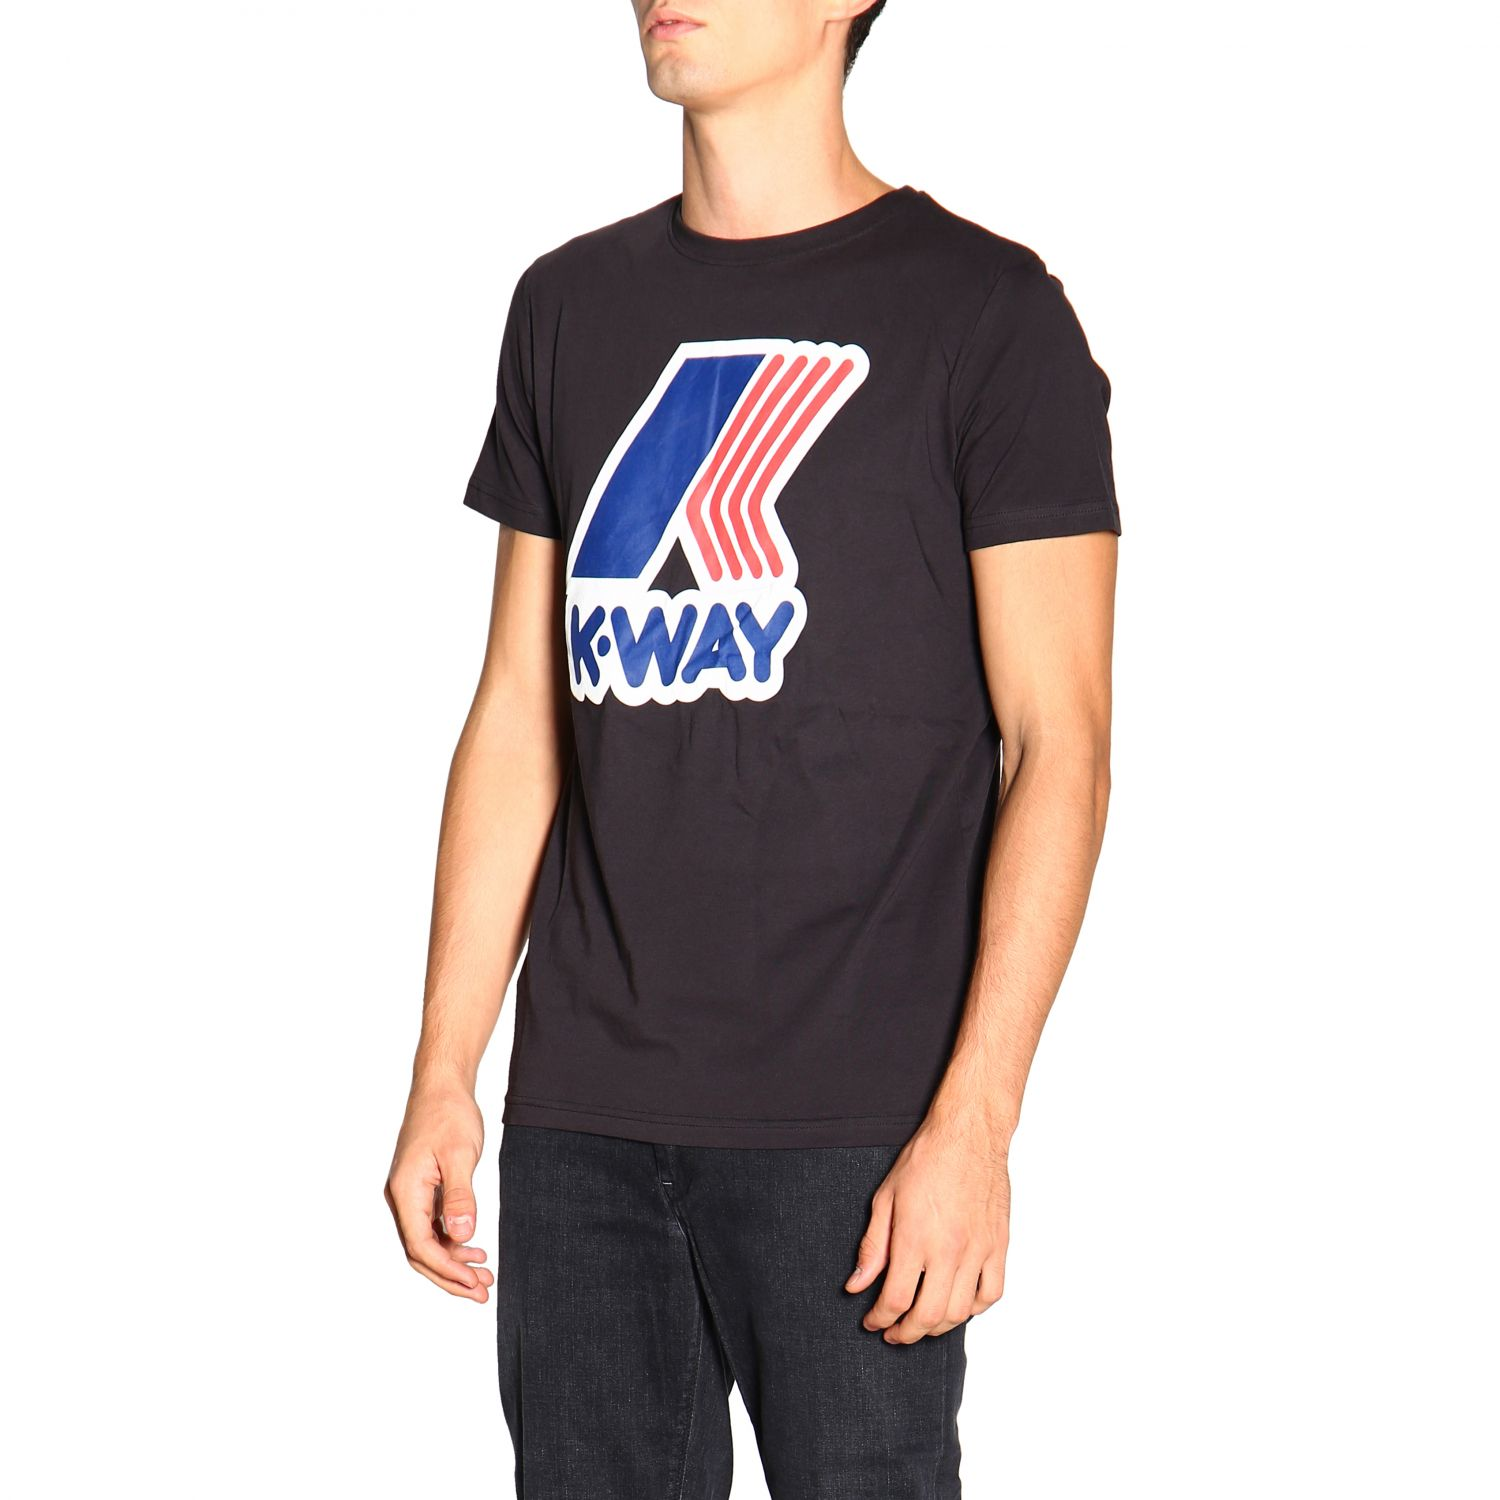 T-shirt men K-way black 4